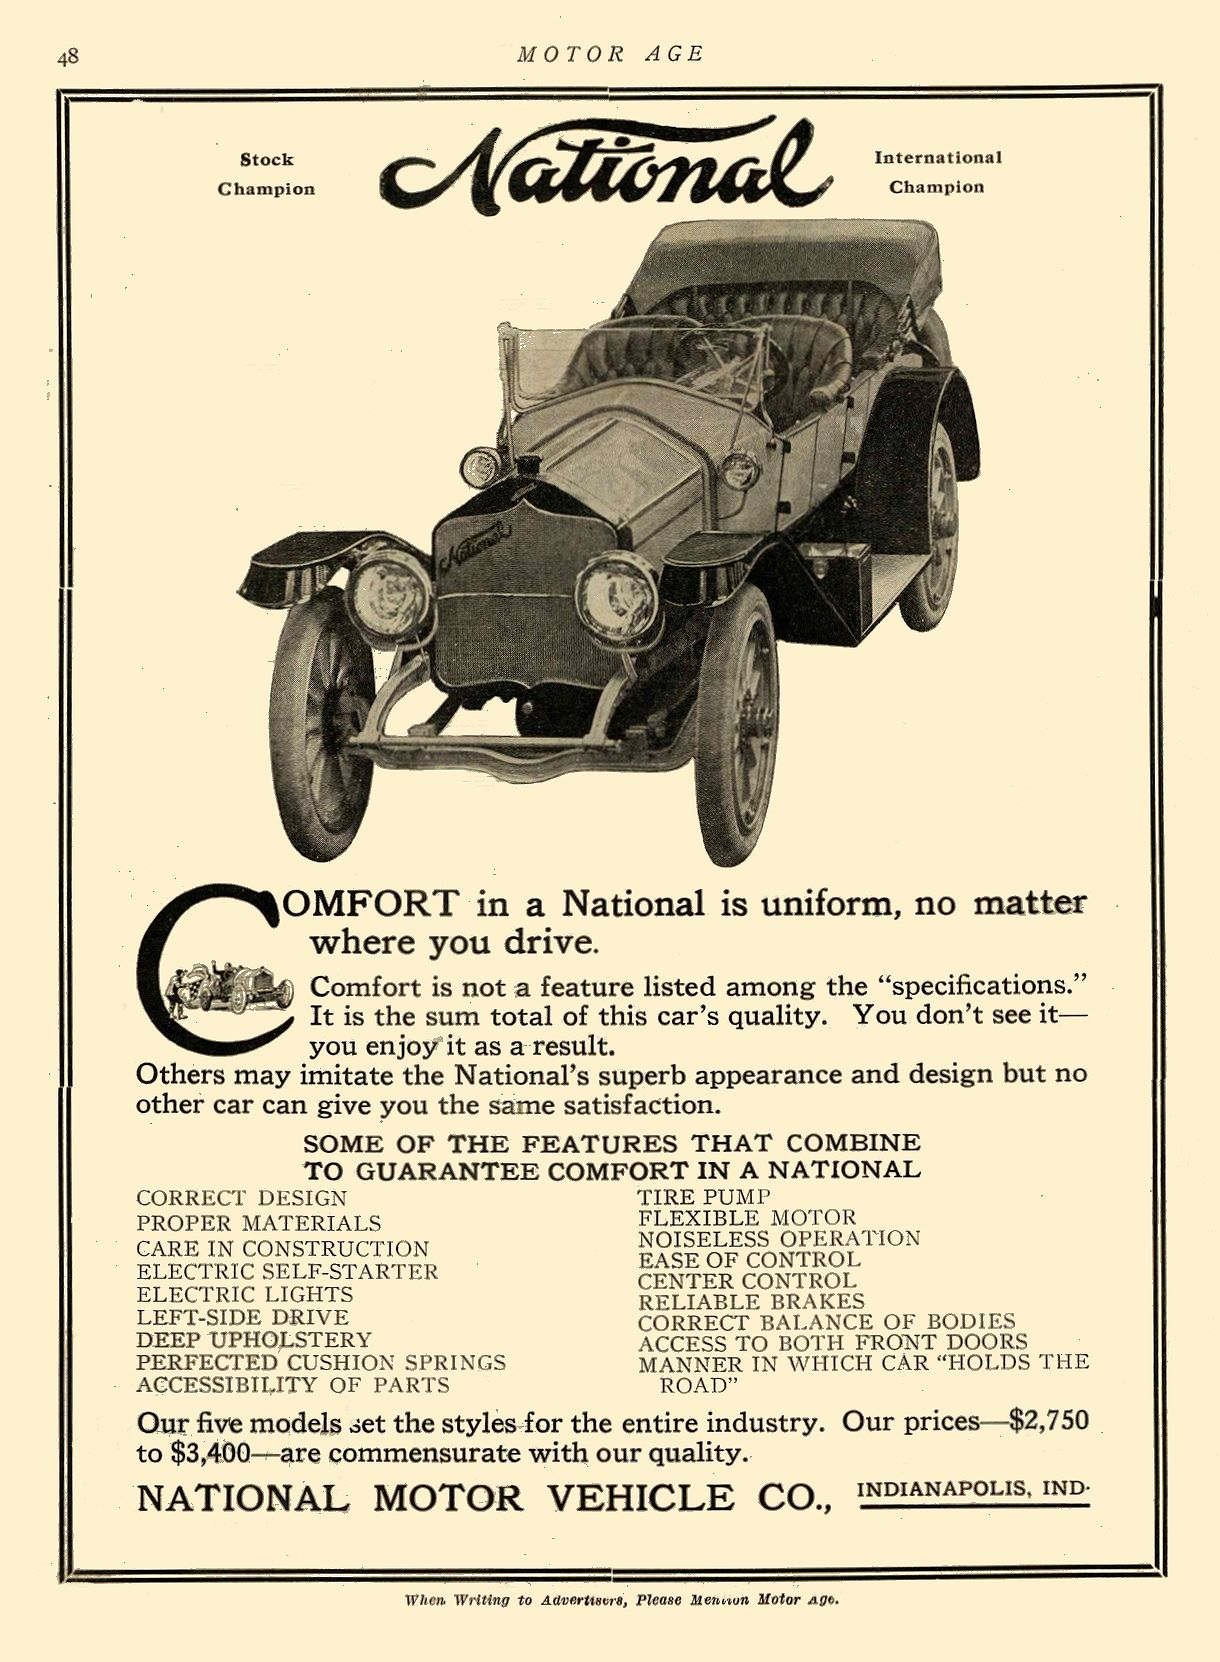 ca. 1913 NATIONAL Comfort in a National is uniform NATIONAL MOTOR VEHICLE CO. Indianapolis, IND MOTOR AGE ca. 1913 8.5″x12″ page 48